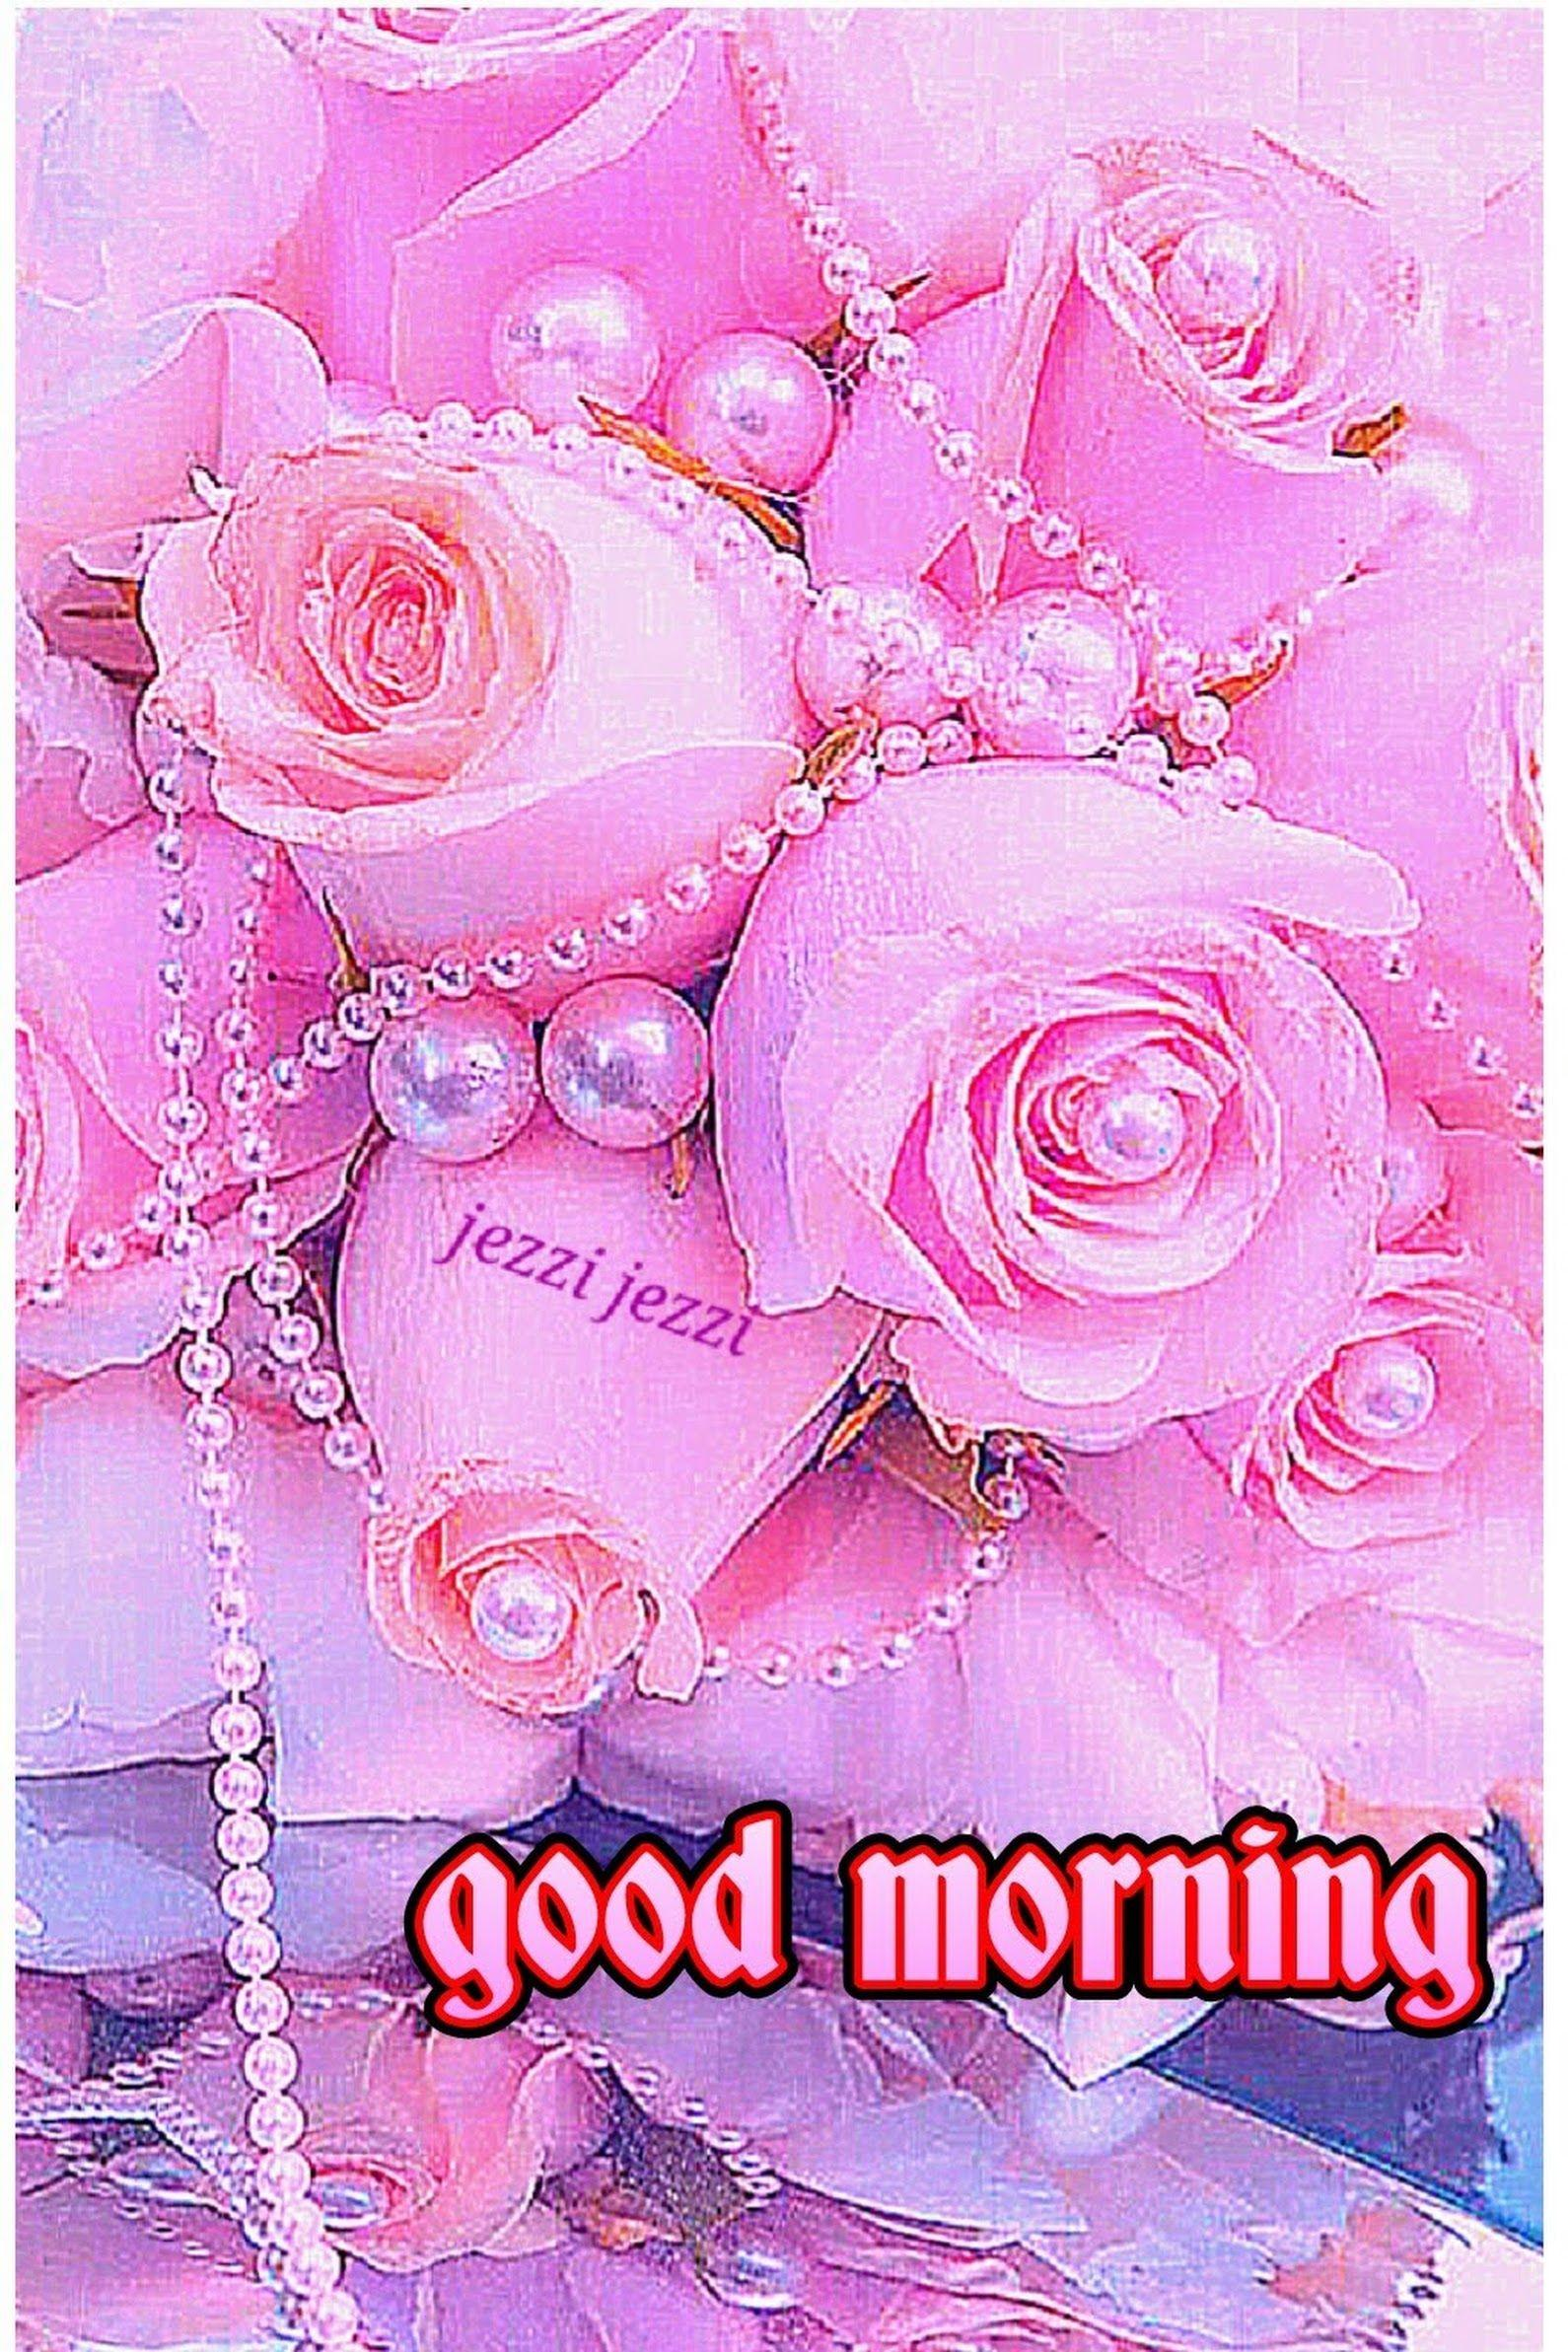 Good Morning Sister Wishes Wallpapers Wallpaper Cave